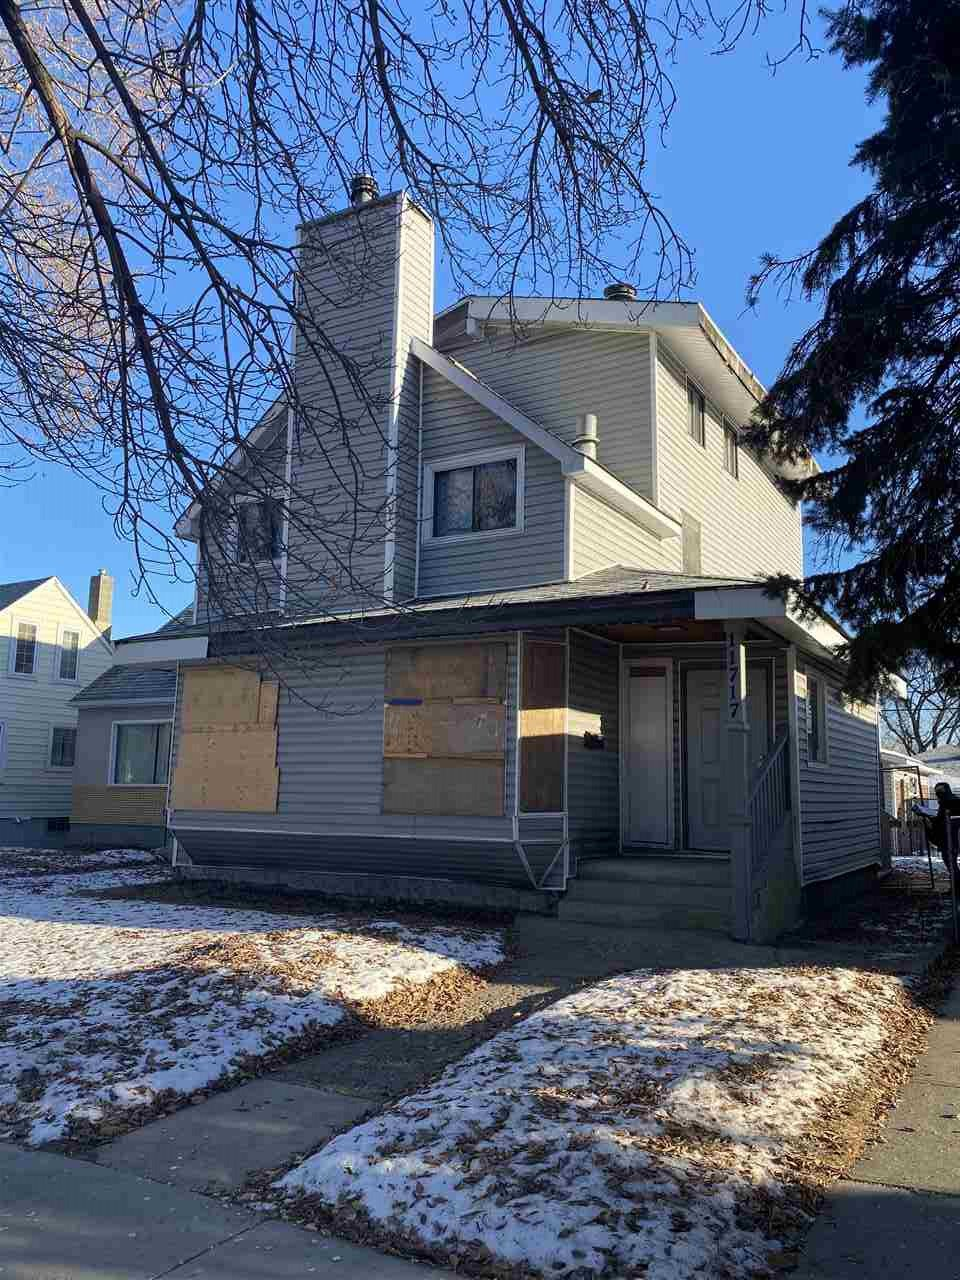 Main Photo: 11717 84 Street in Edmonton: Zone 05 House for sale : MLS®# E4224691